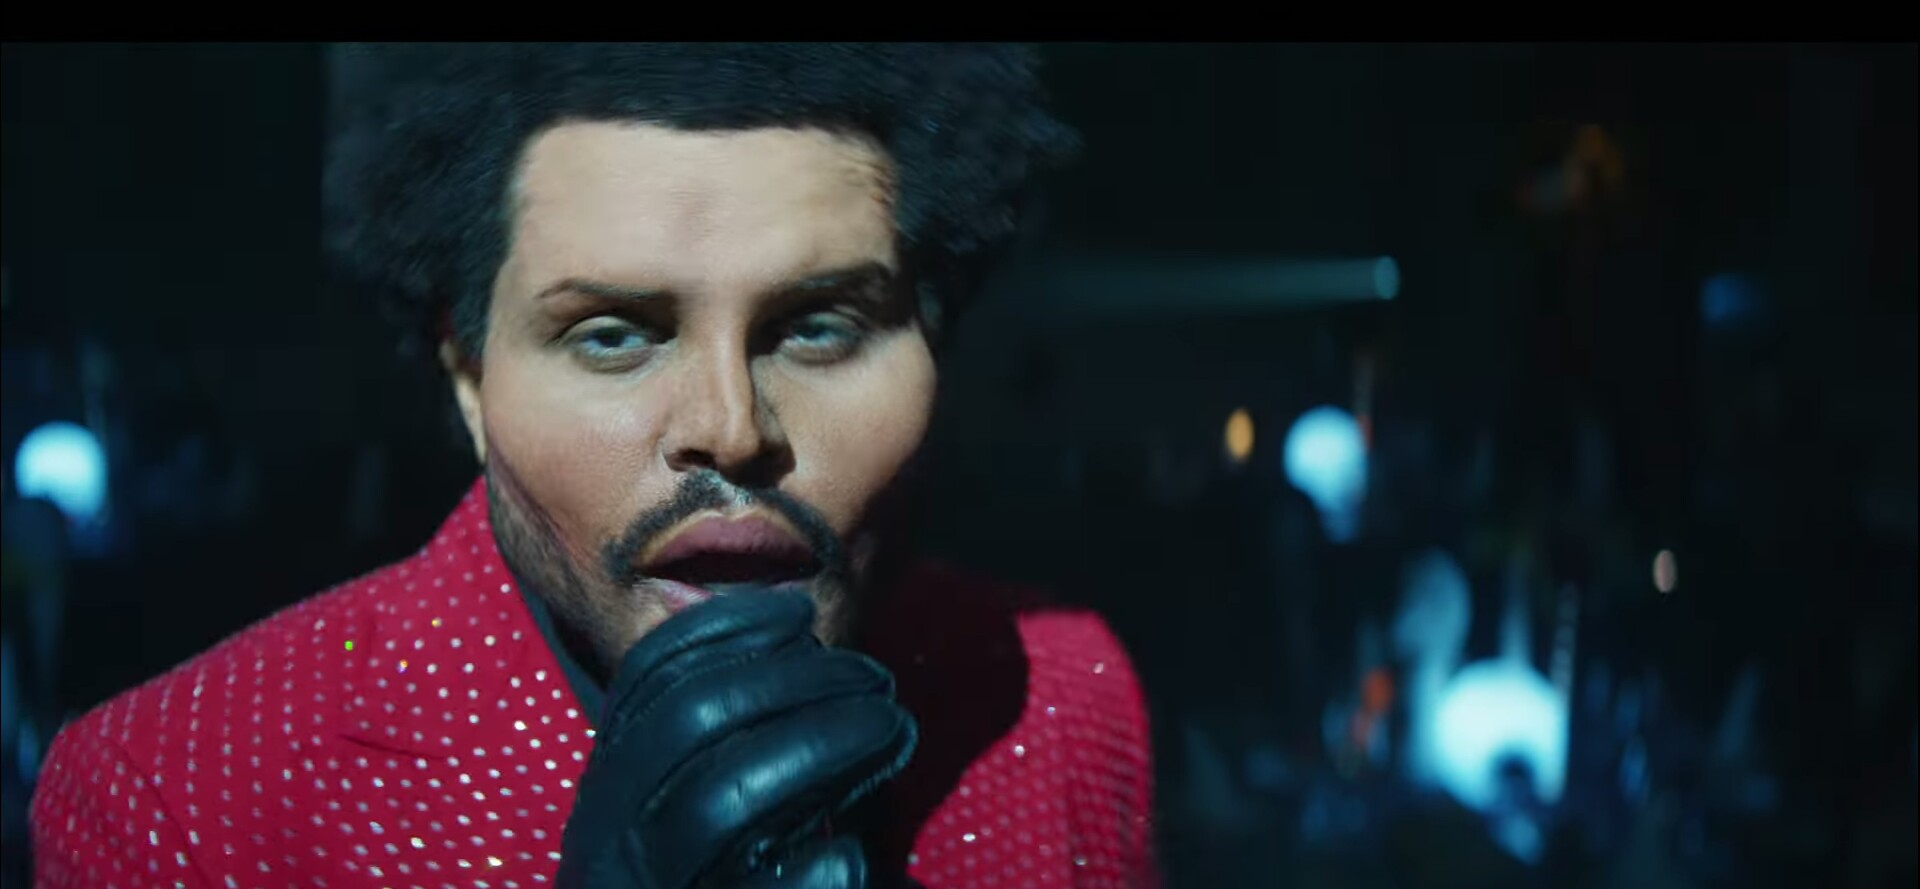 What Happened to The Weeknd Face? The Plastic Surgery